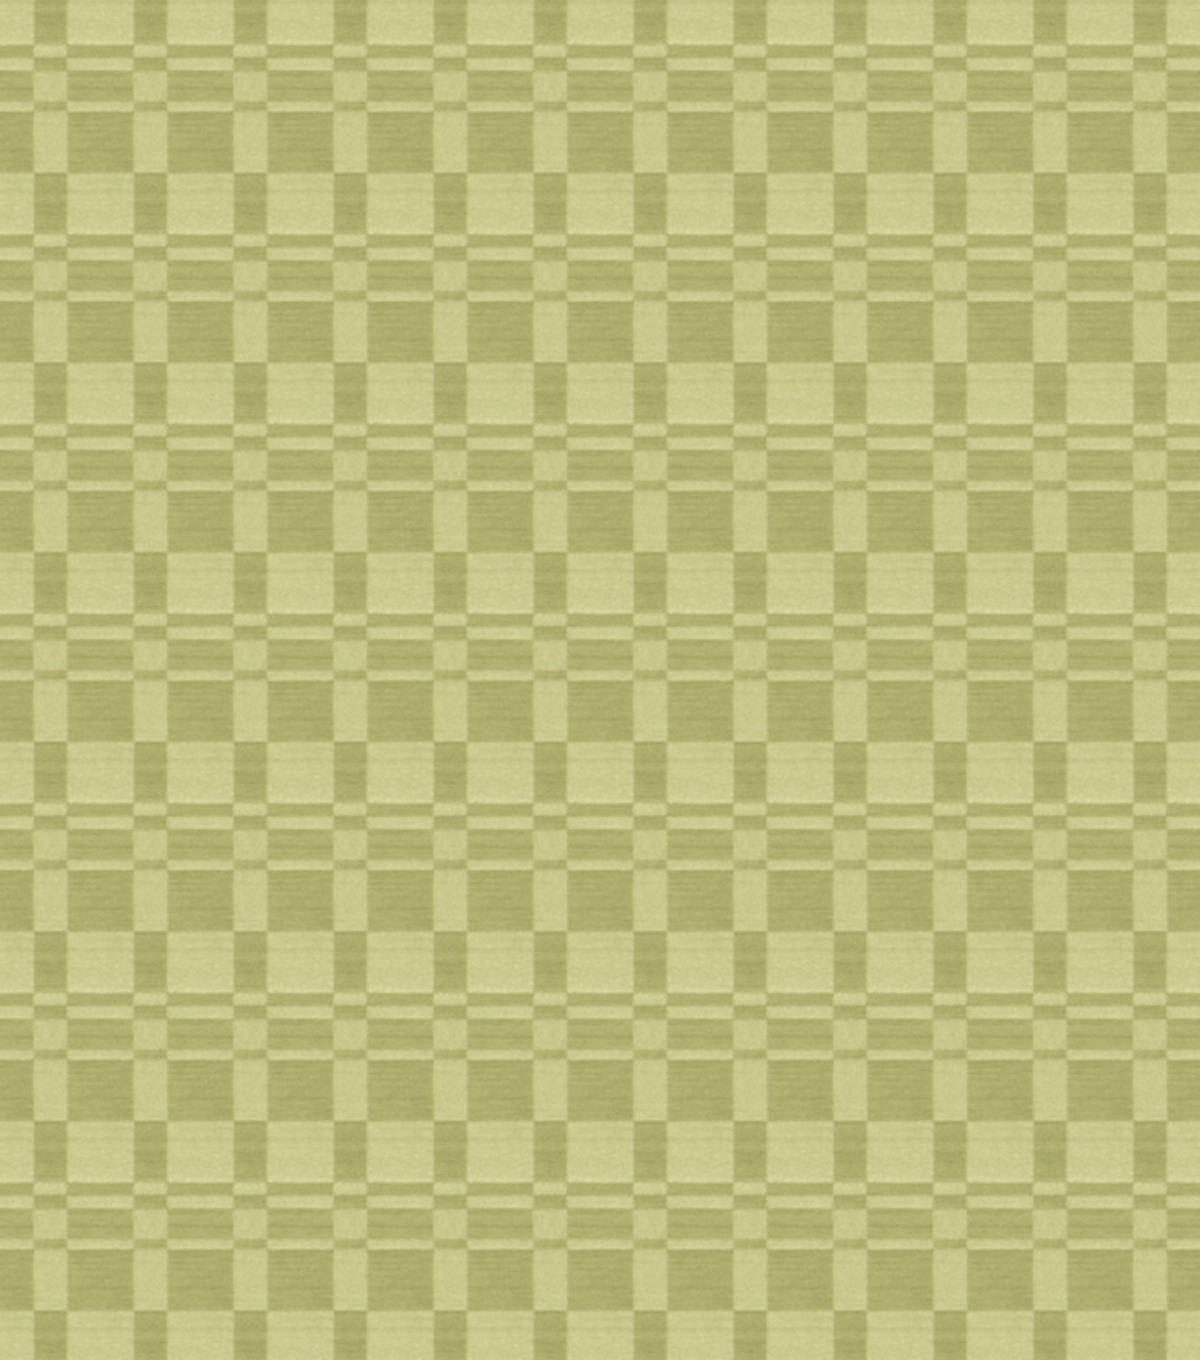 8\u0027\u0027x8\u0027\u0027 Home Decor Fabric Swatch-Solid Fabric Eaton Square Ethical Olive